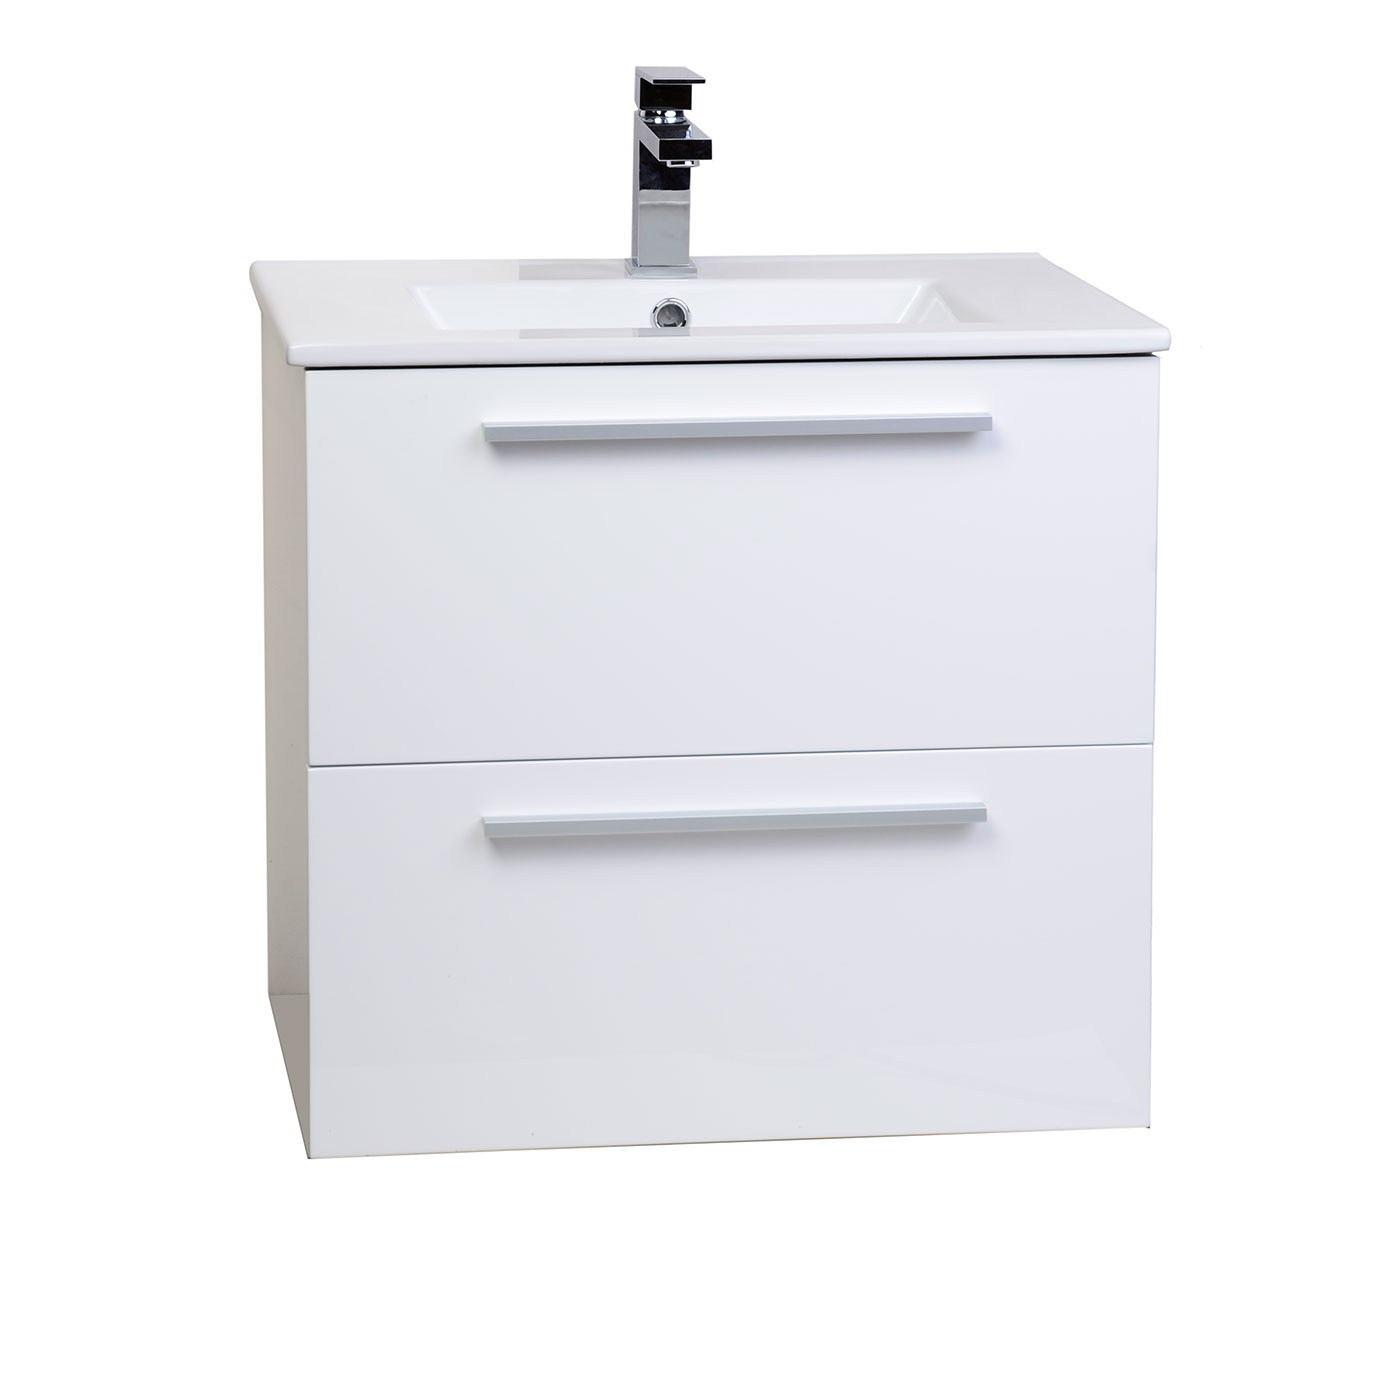 Buy Modern Bathroom Vanity Cabinets Free Shipping On Conceptbathscom - Cheap white bathroom vanity